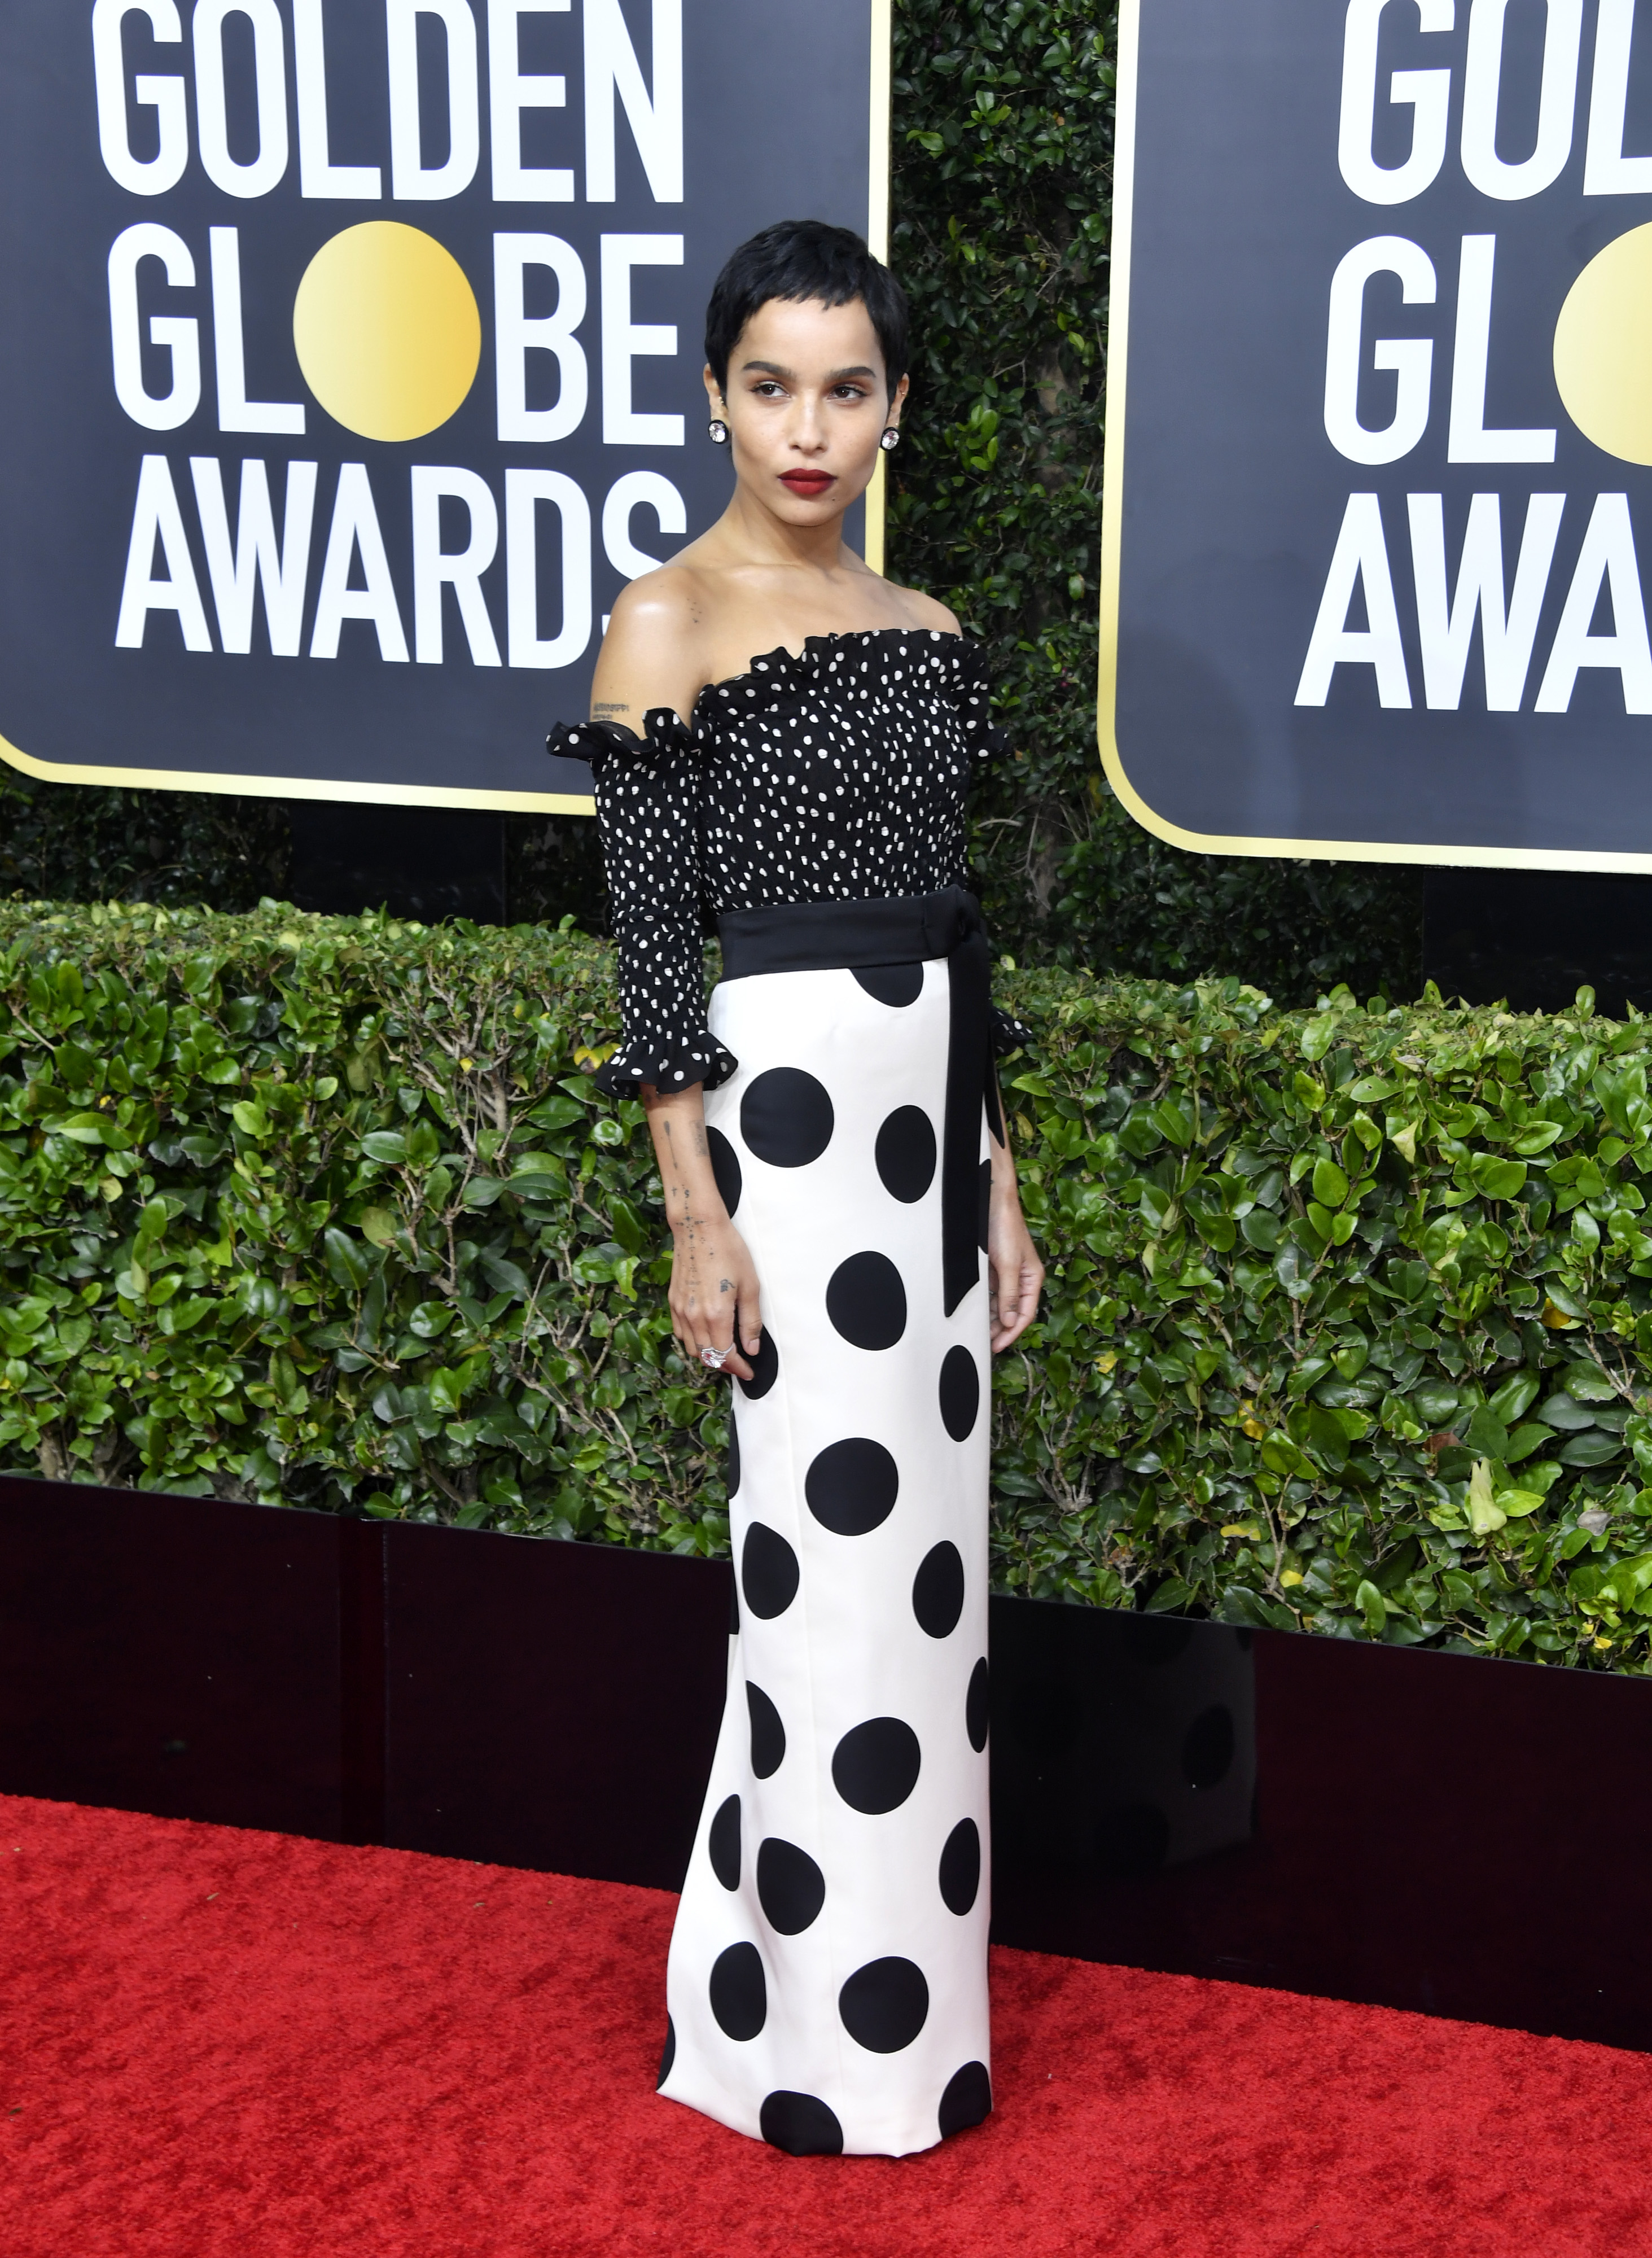 BEVERLY HILLS, CALIFORNIA - JANUARY 05: Zoë Kravitz attends the 77th Annual Golden Globe Awards at The Beverly Hilton Hotel on January 05, 2020 in Beverly Hills, California. (Photo by Frazer Harrison/Getty Images)